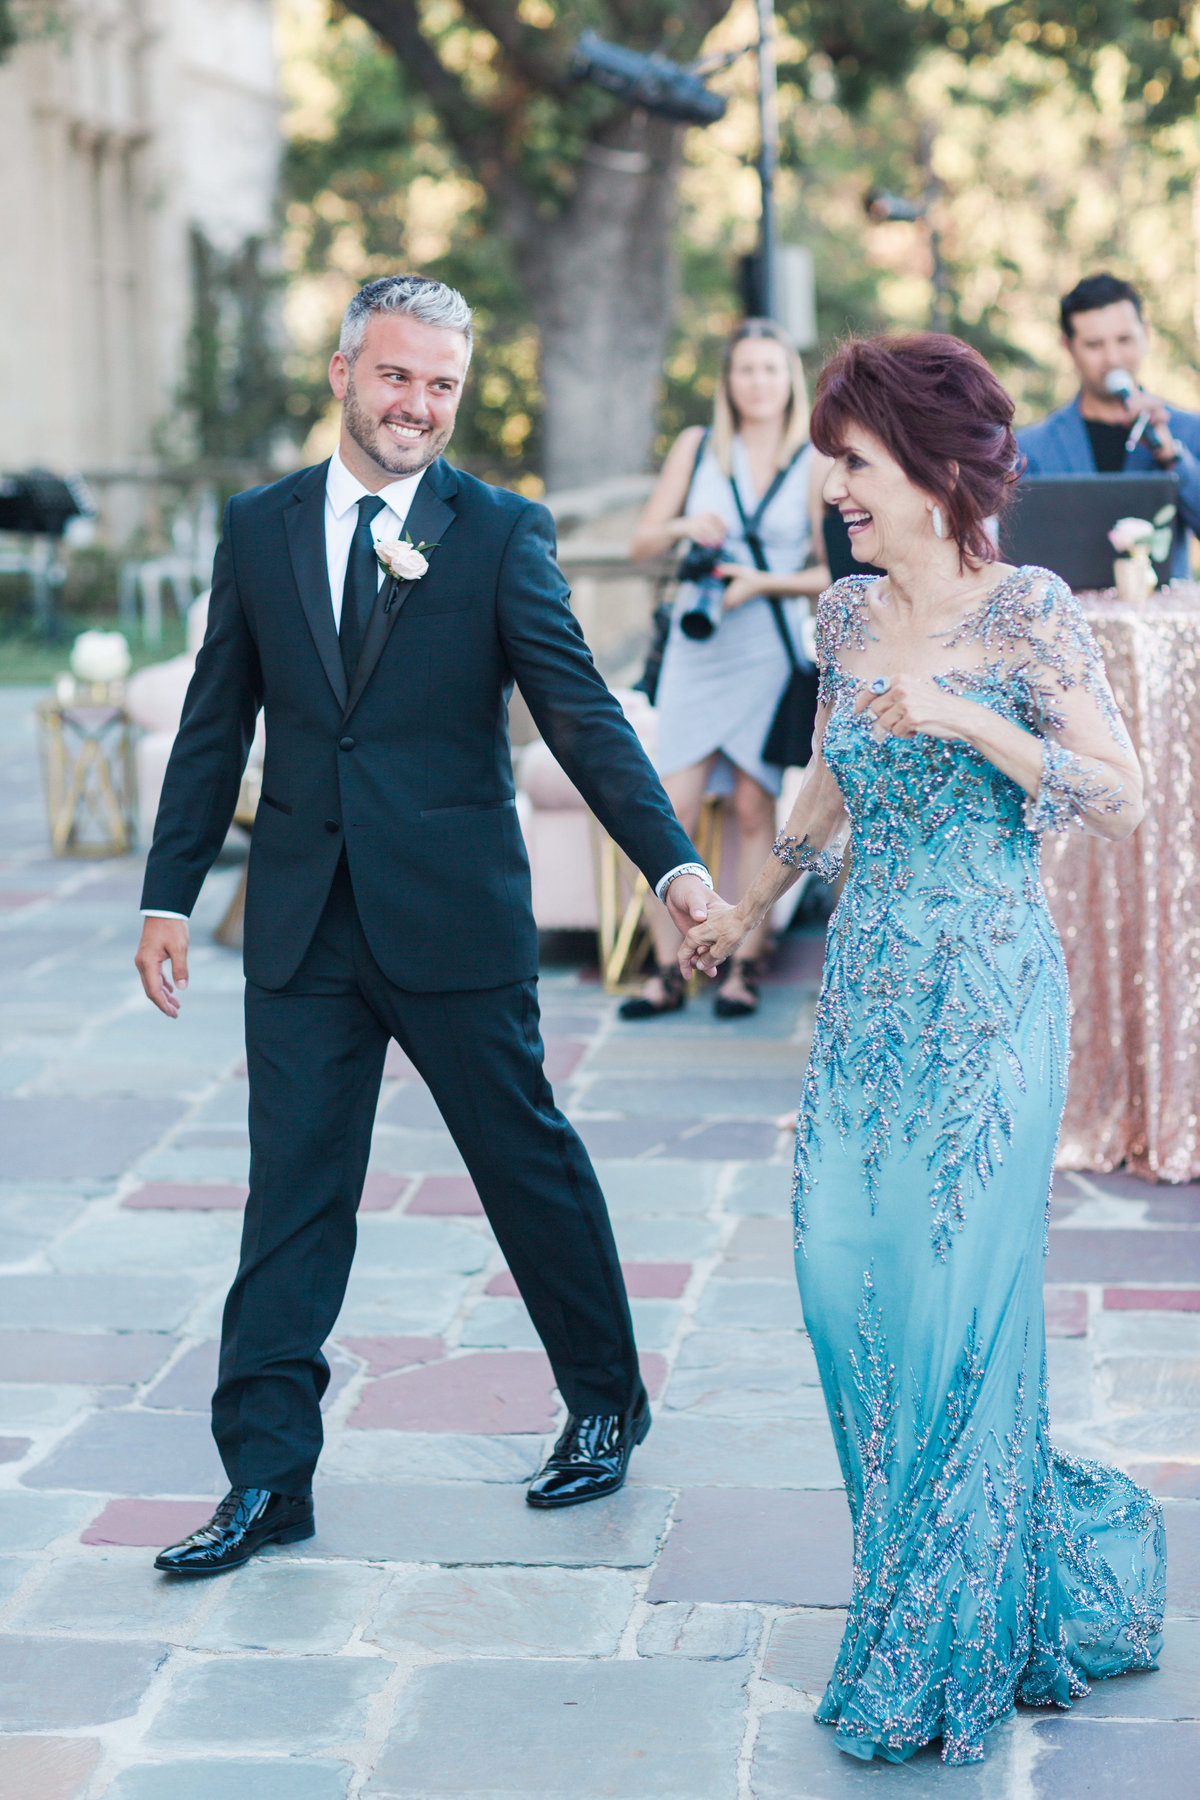 Greystone_Mansion_Intimate_Black_Tie_Wedding_Valorie_Darling_Photography - 157 of 206